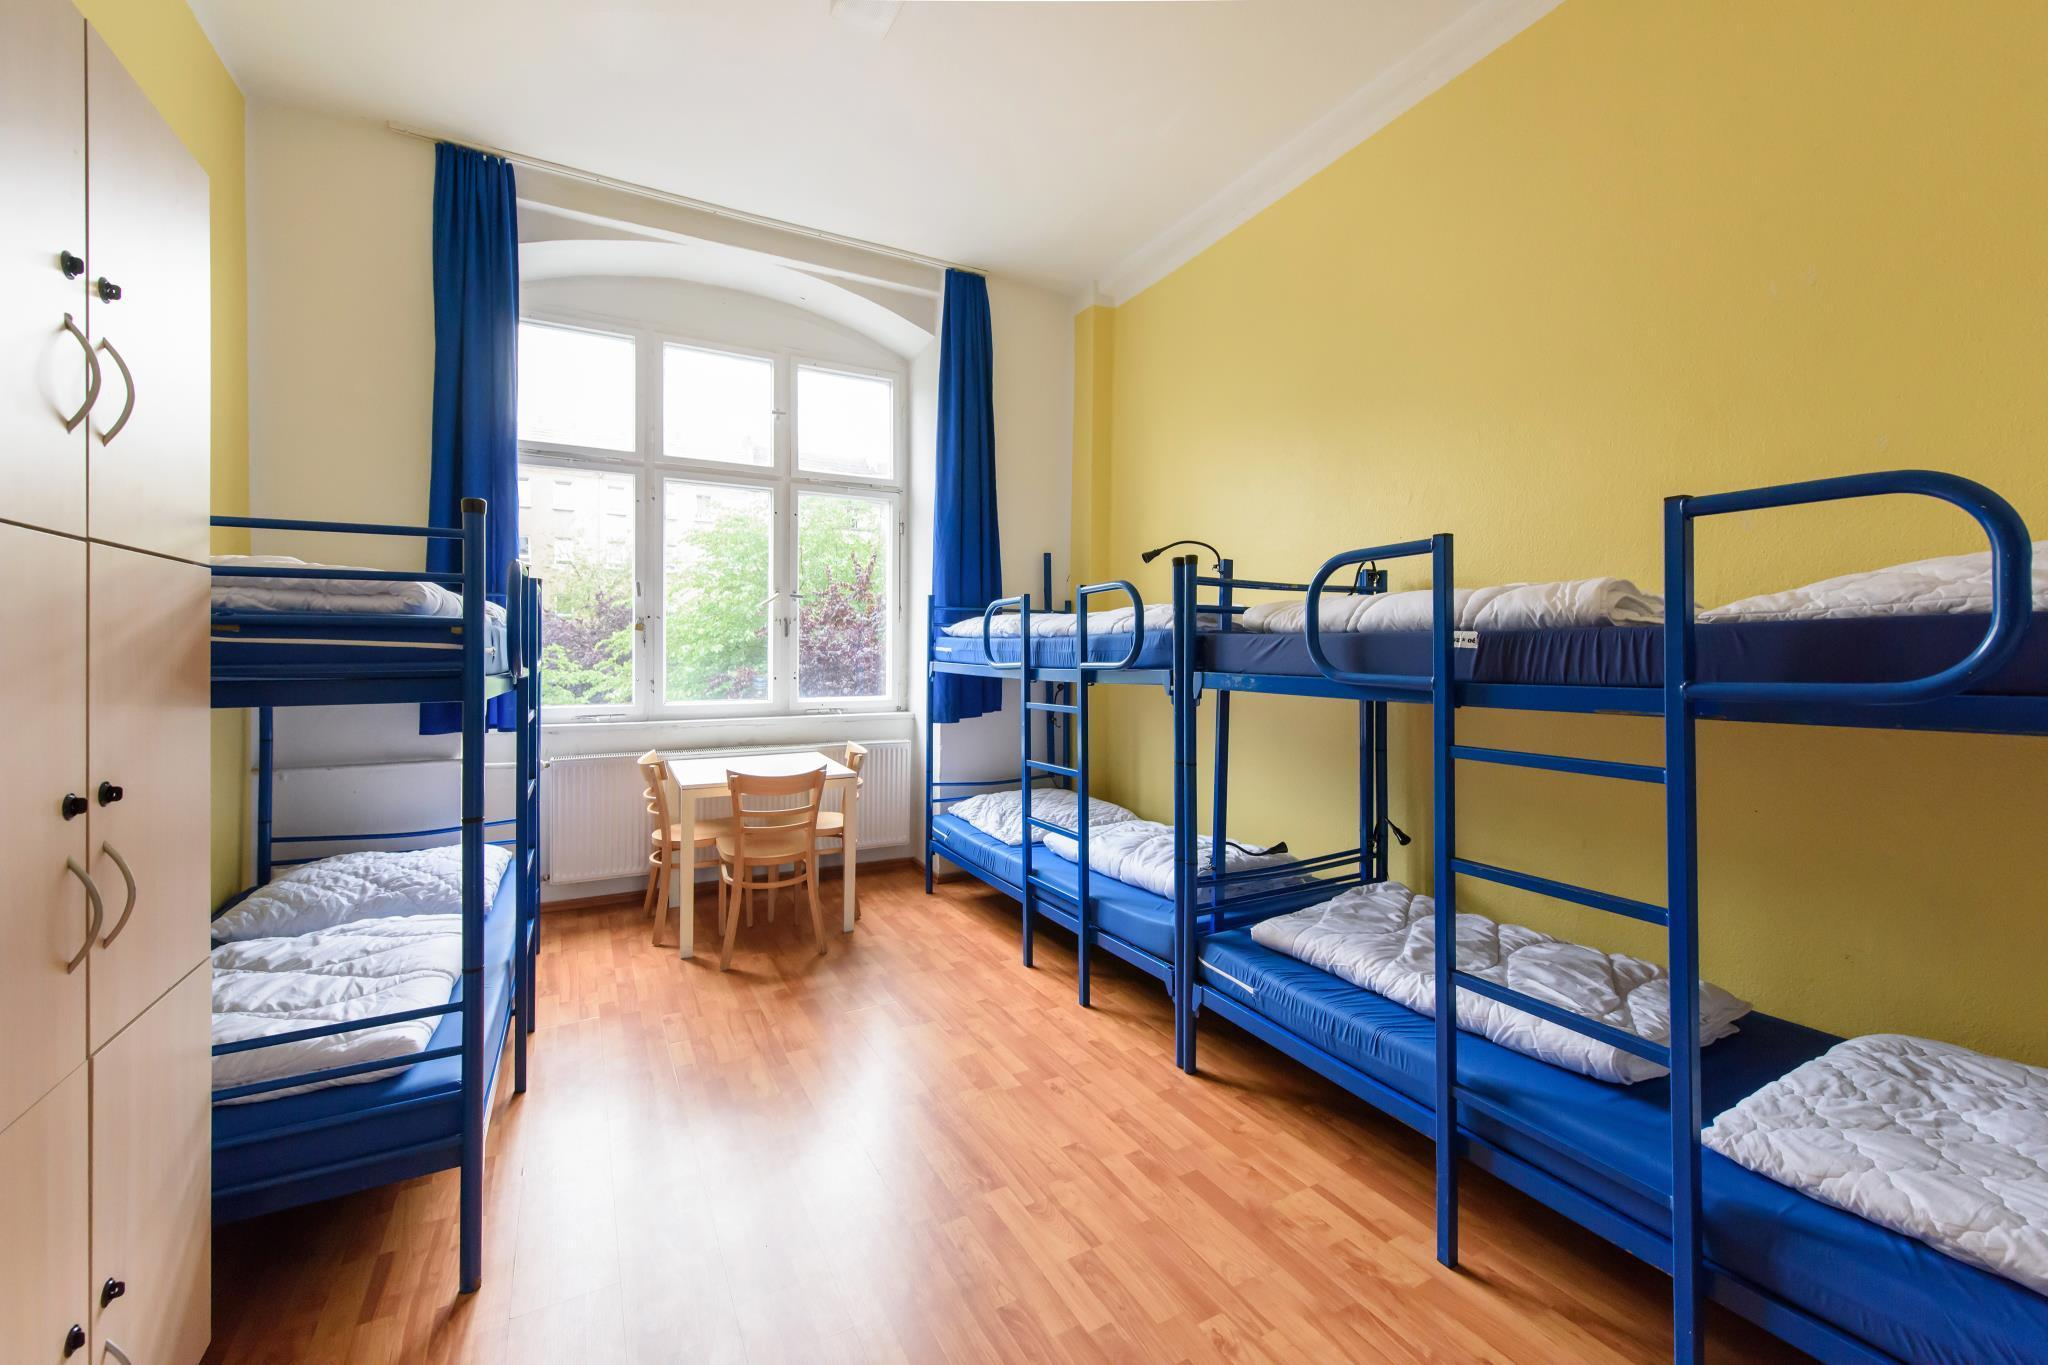 1 seng i 6-sengs sovesal (blandet) (6-Bed Dormitory -- Mixed)